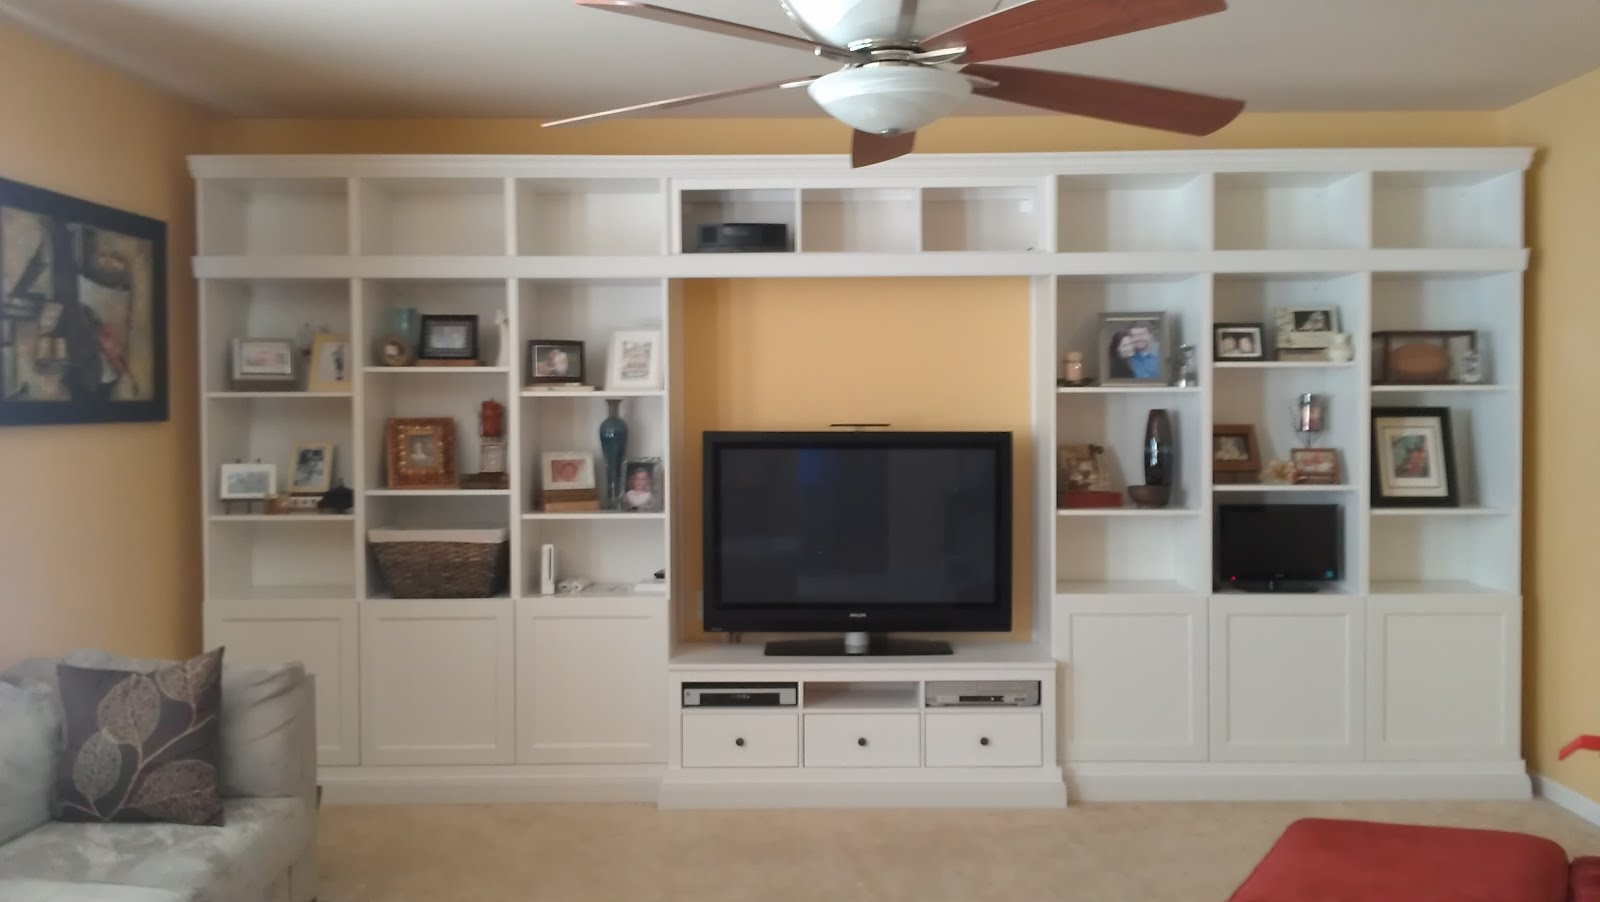 Hemnes Wall Unit Google Search Moms Home Pinterest With Regard To Built In Bookcases With Tv (#11 of 15)